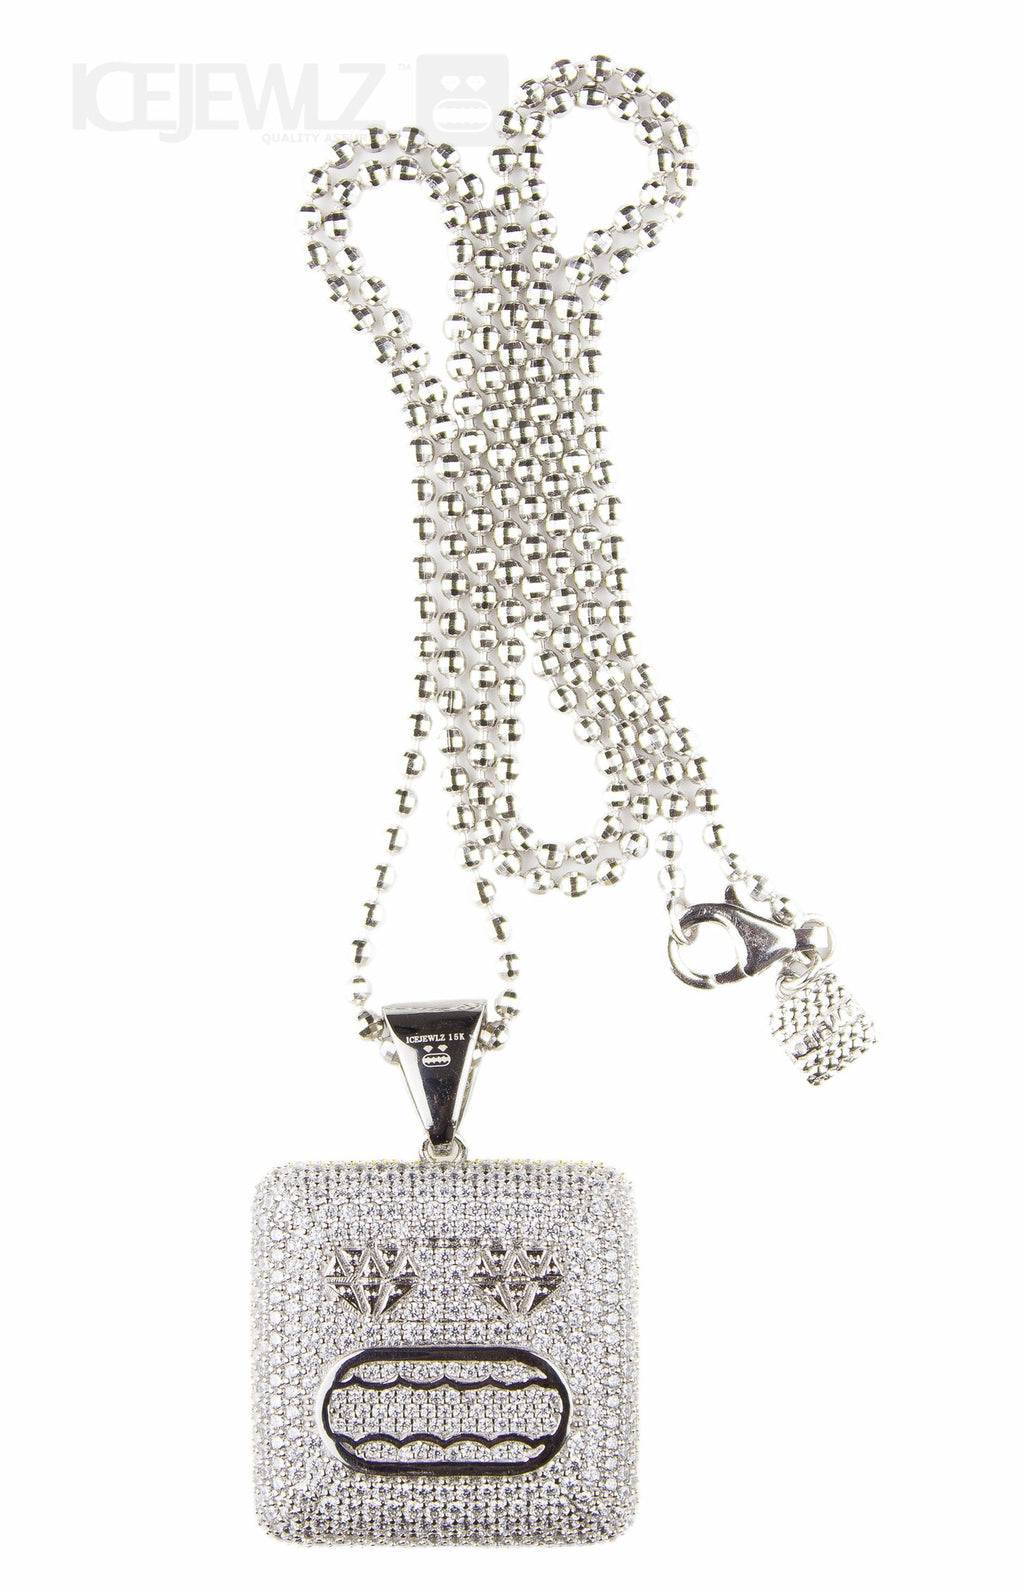 Mr Icejewlz micro pendant (Silver) with chain - IceJewlz - 1